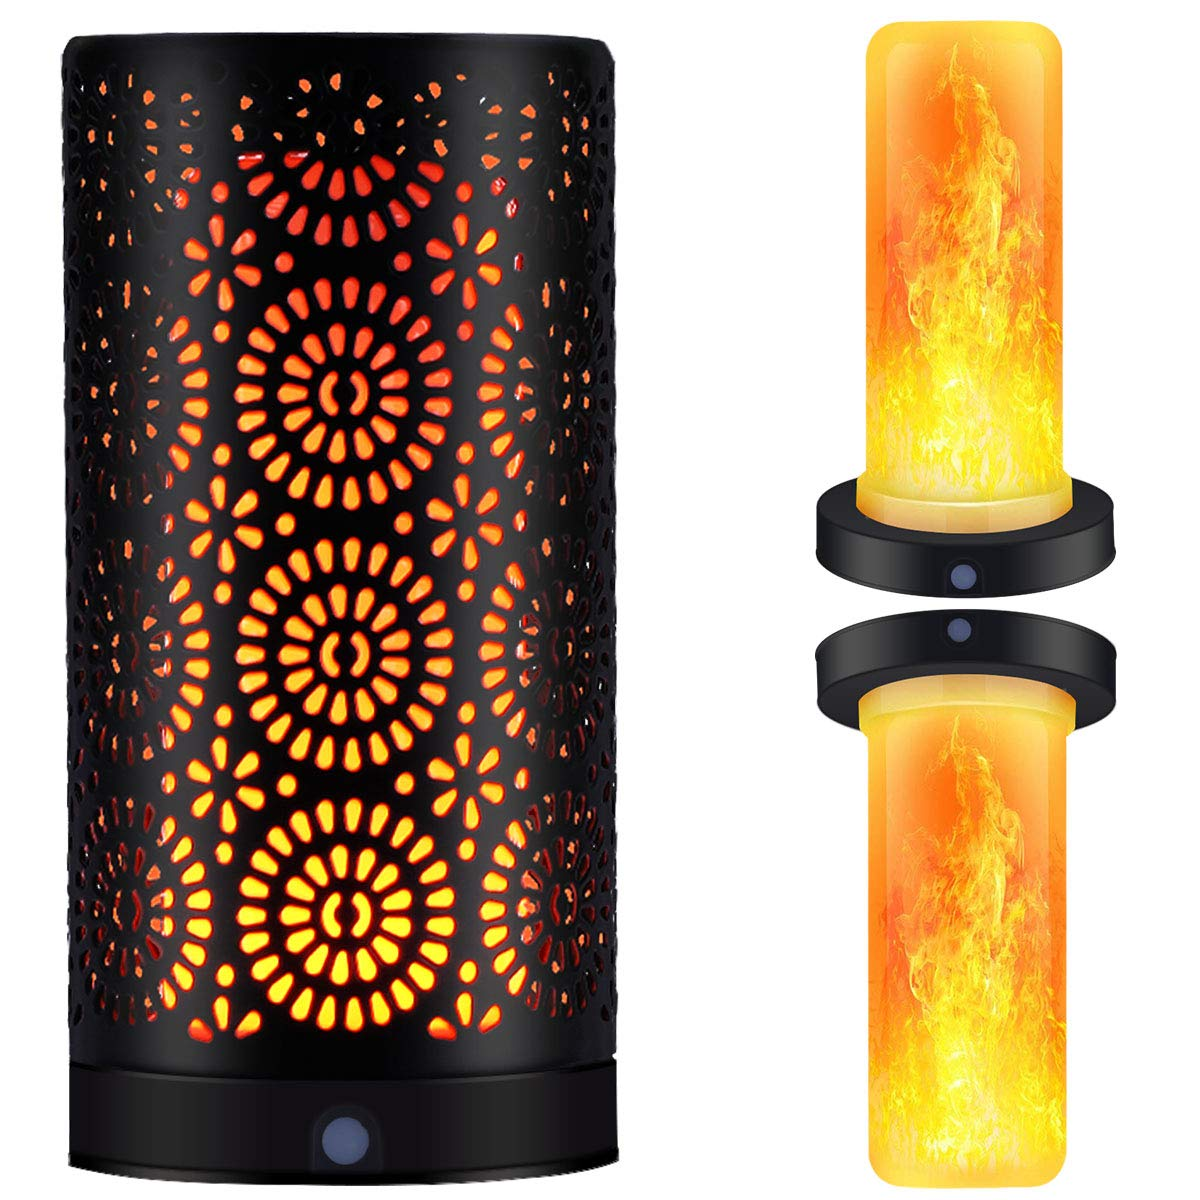 Magnetic LED Flame Effect Light Table Lamp USB Rechargeable Upside Down Fire Stimulated Desk Light Portable Vintage Decoration Light Antique Lantern for Christmas Bar Hotel Restaurants Decorations